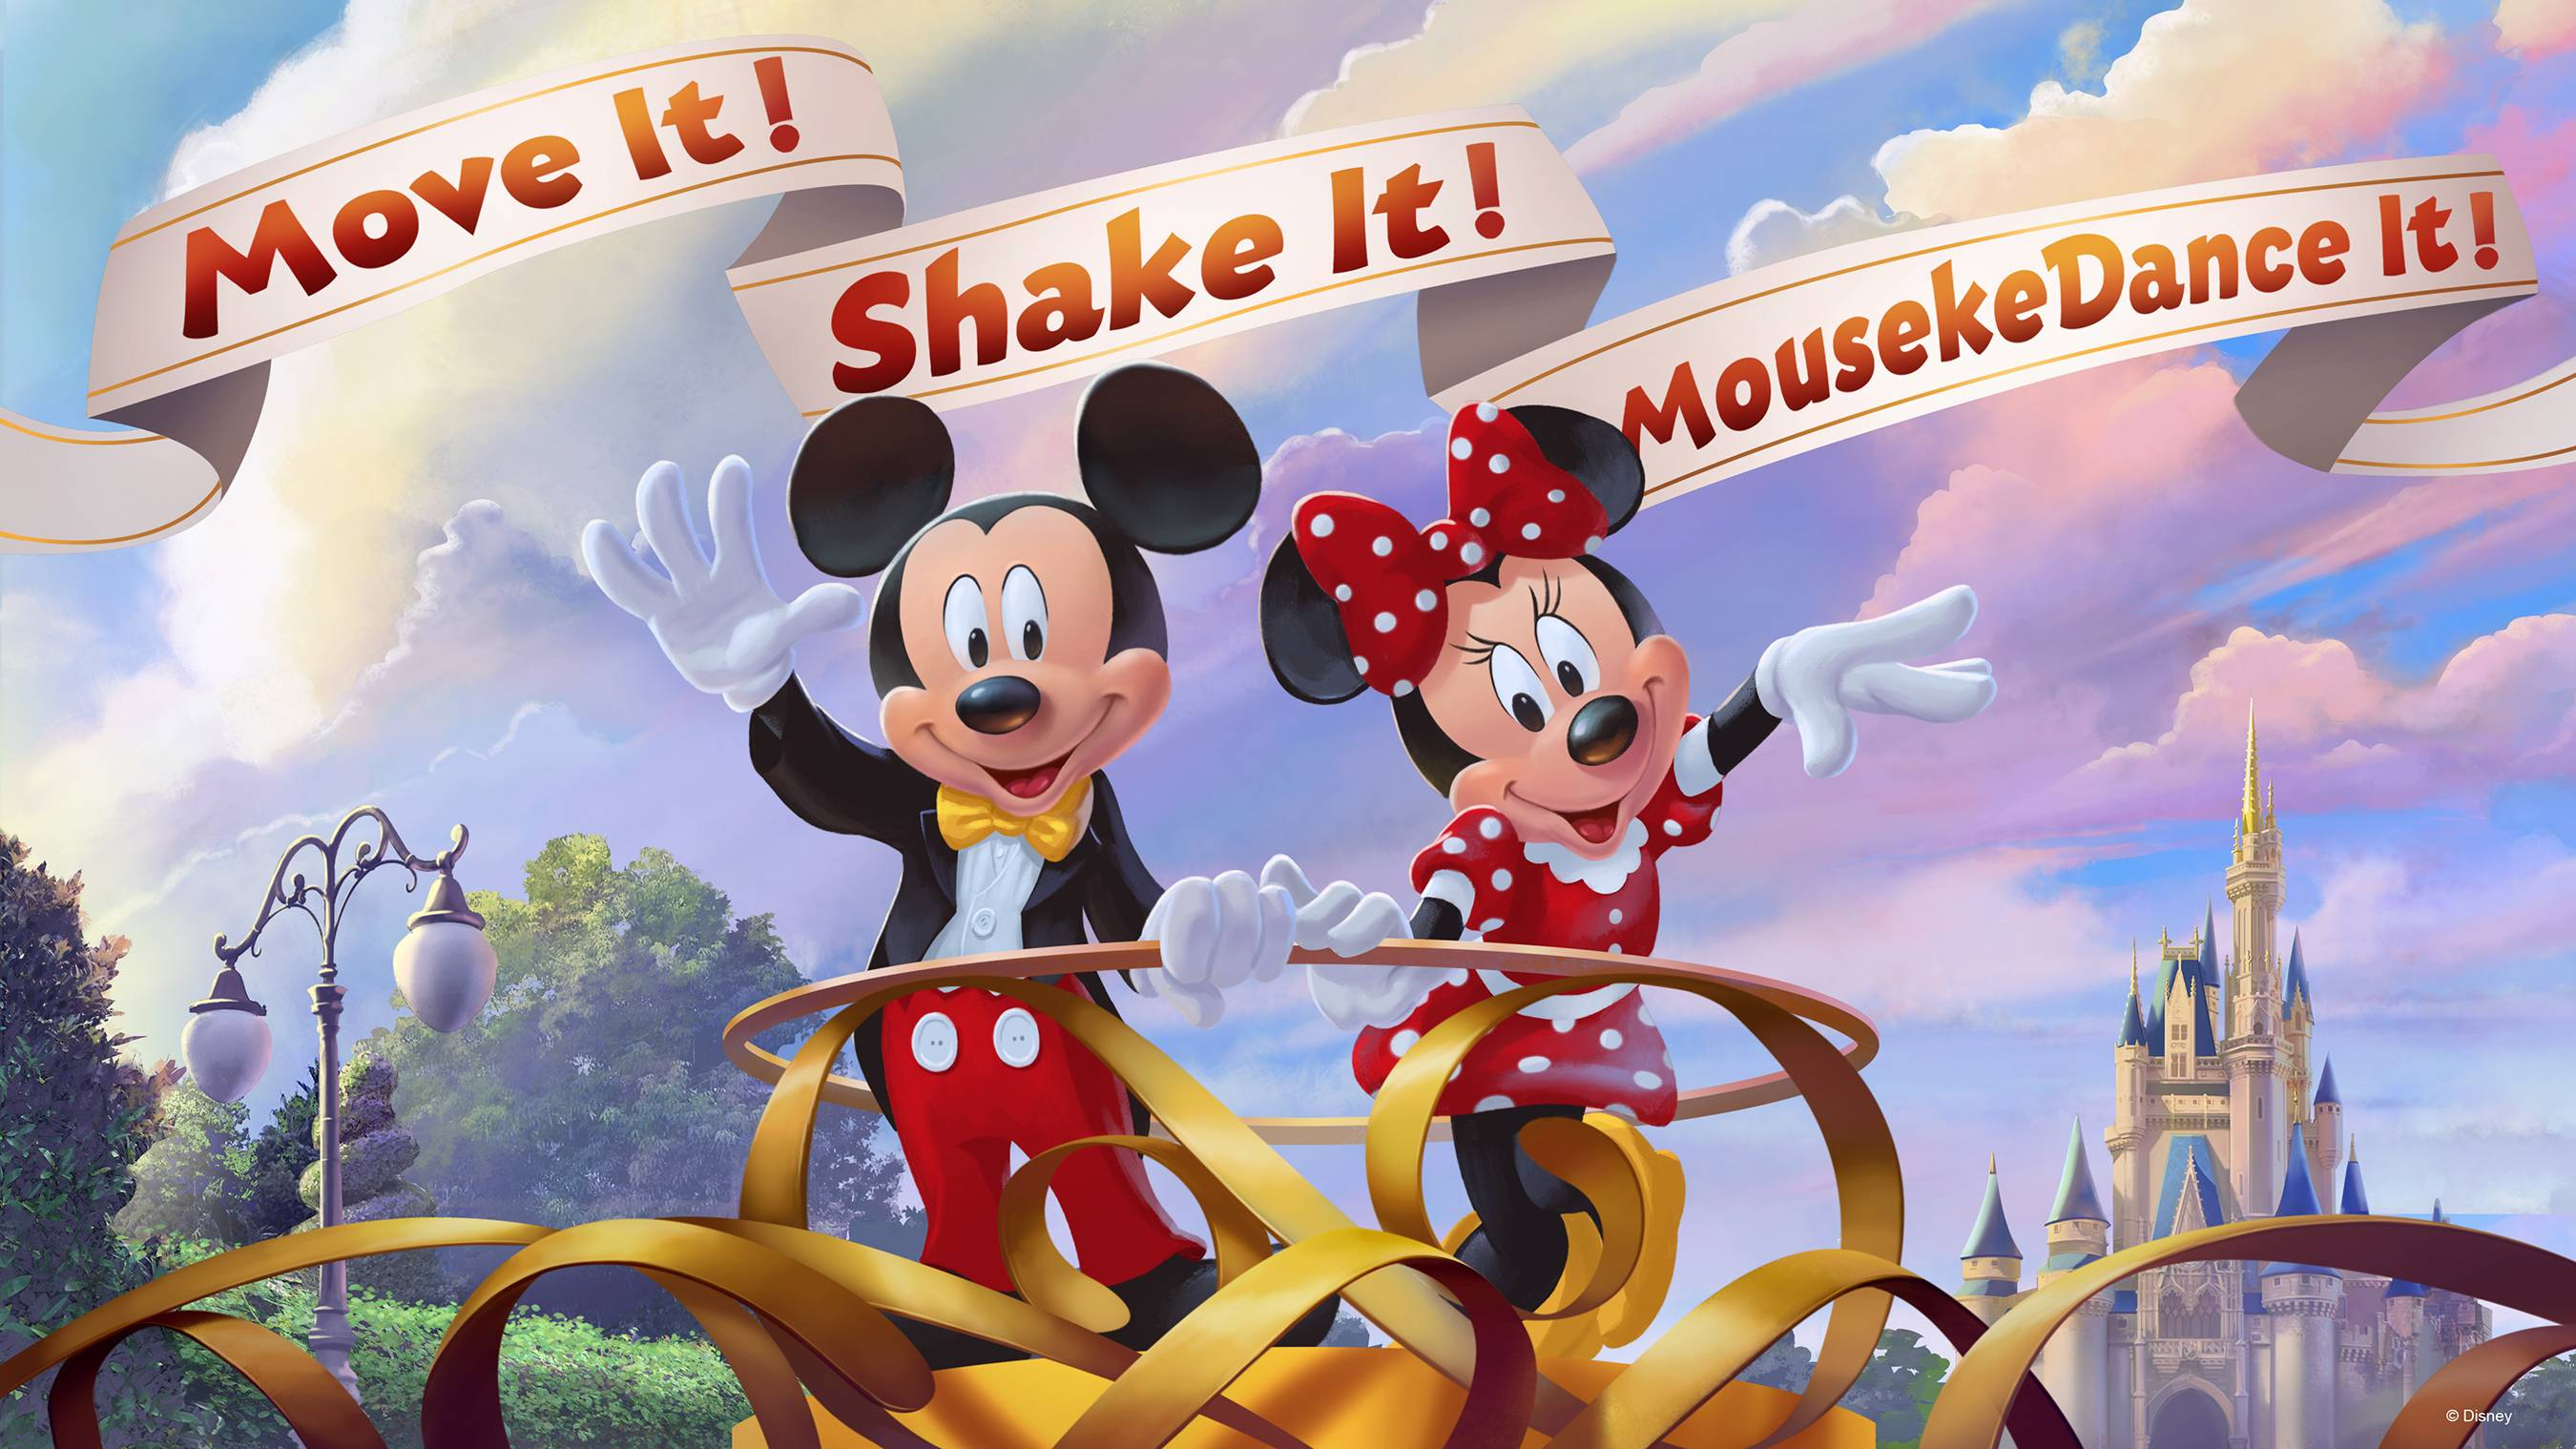 Move It! Shake It! MousekeDance It! Street Party concept art